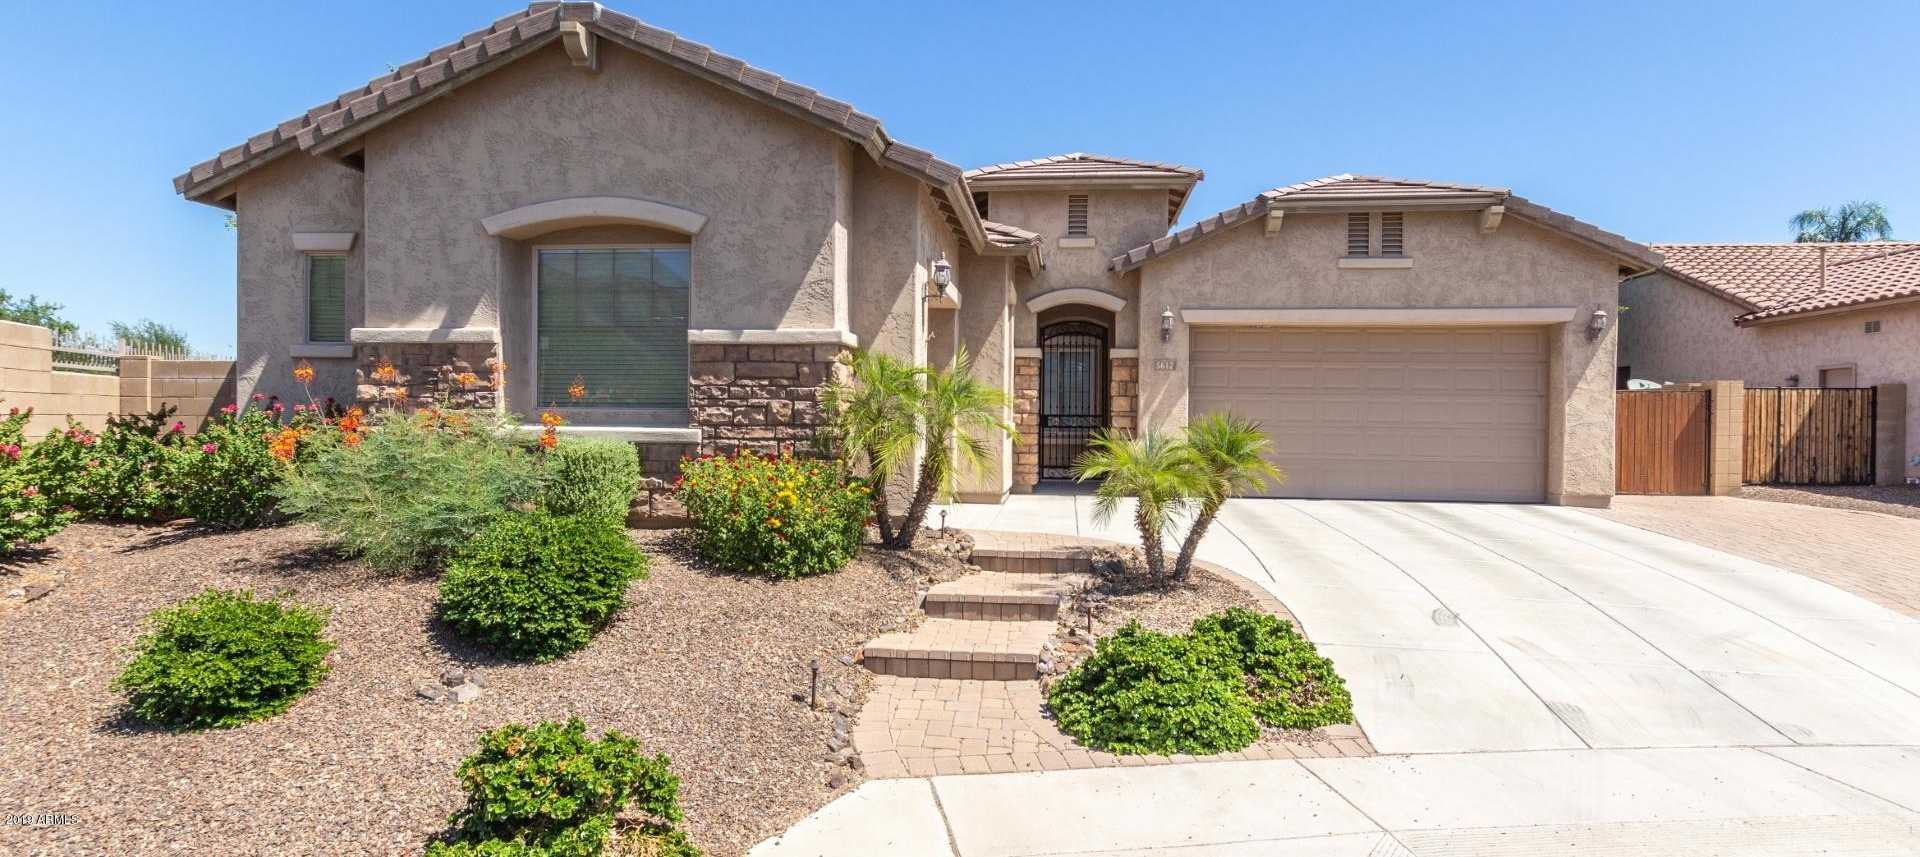 $449,900 - 4Br/3Ba - Home for Sale in Stetson Valley Parcels 18 19 24 25 26, Phoenix